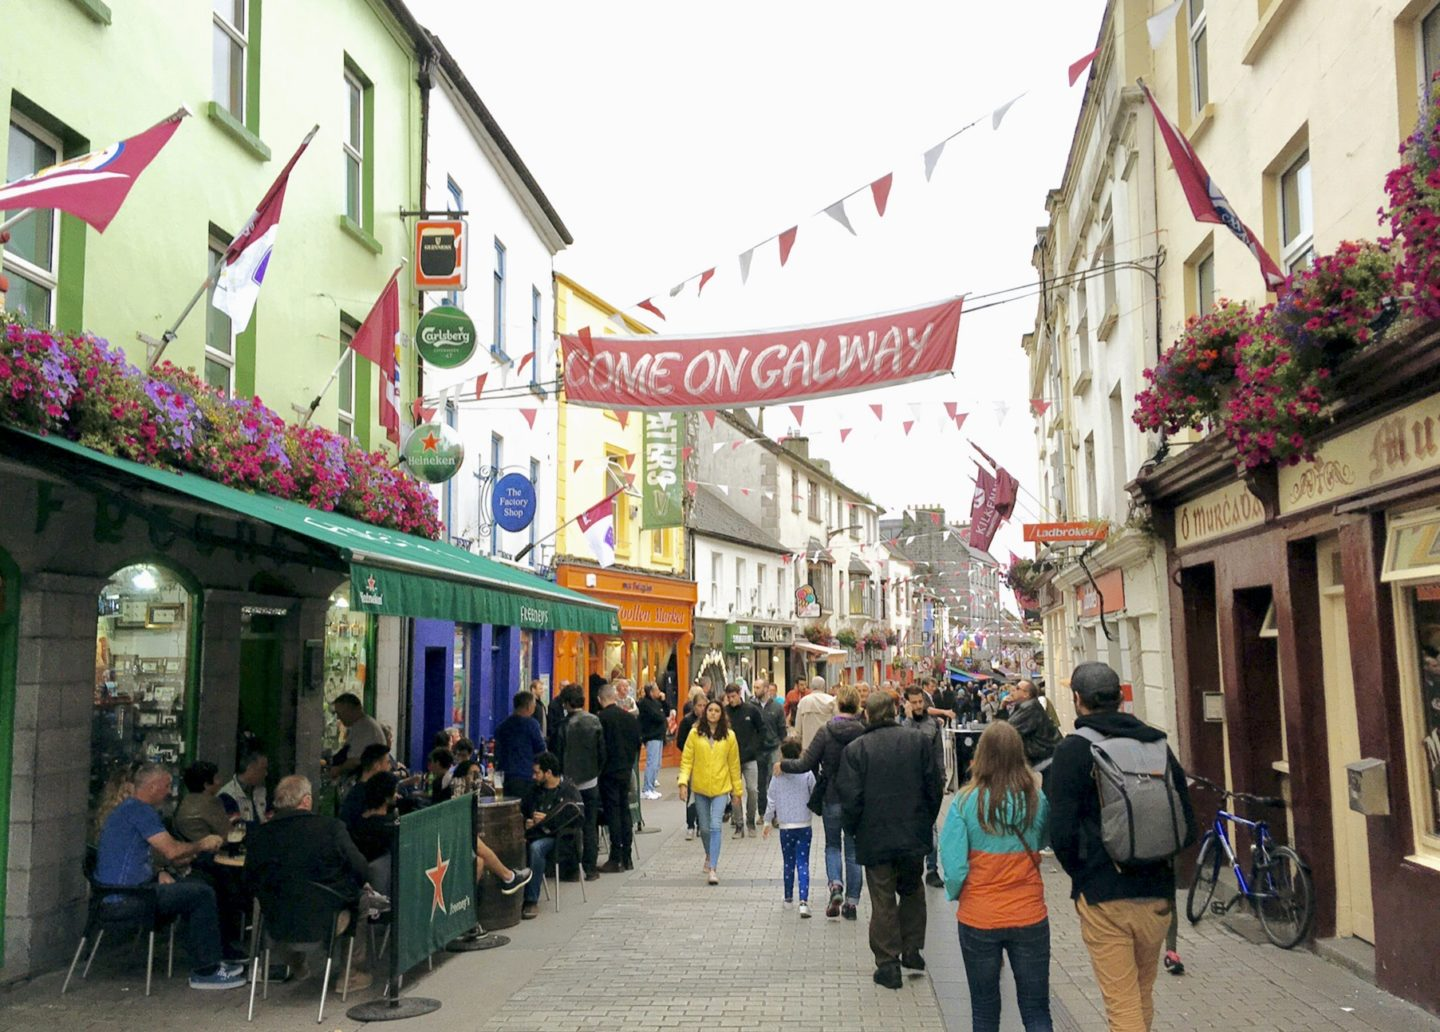 9 Things to Do in Galway (Other than Pubs!)